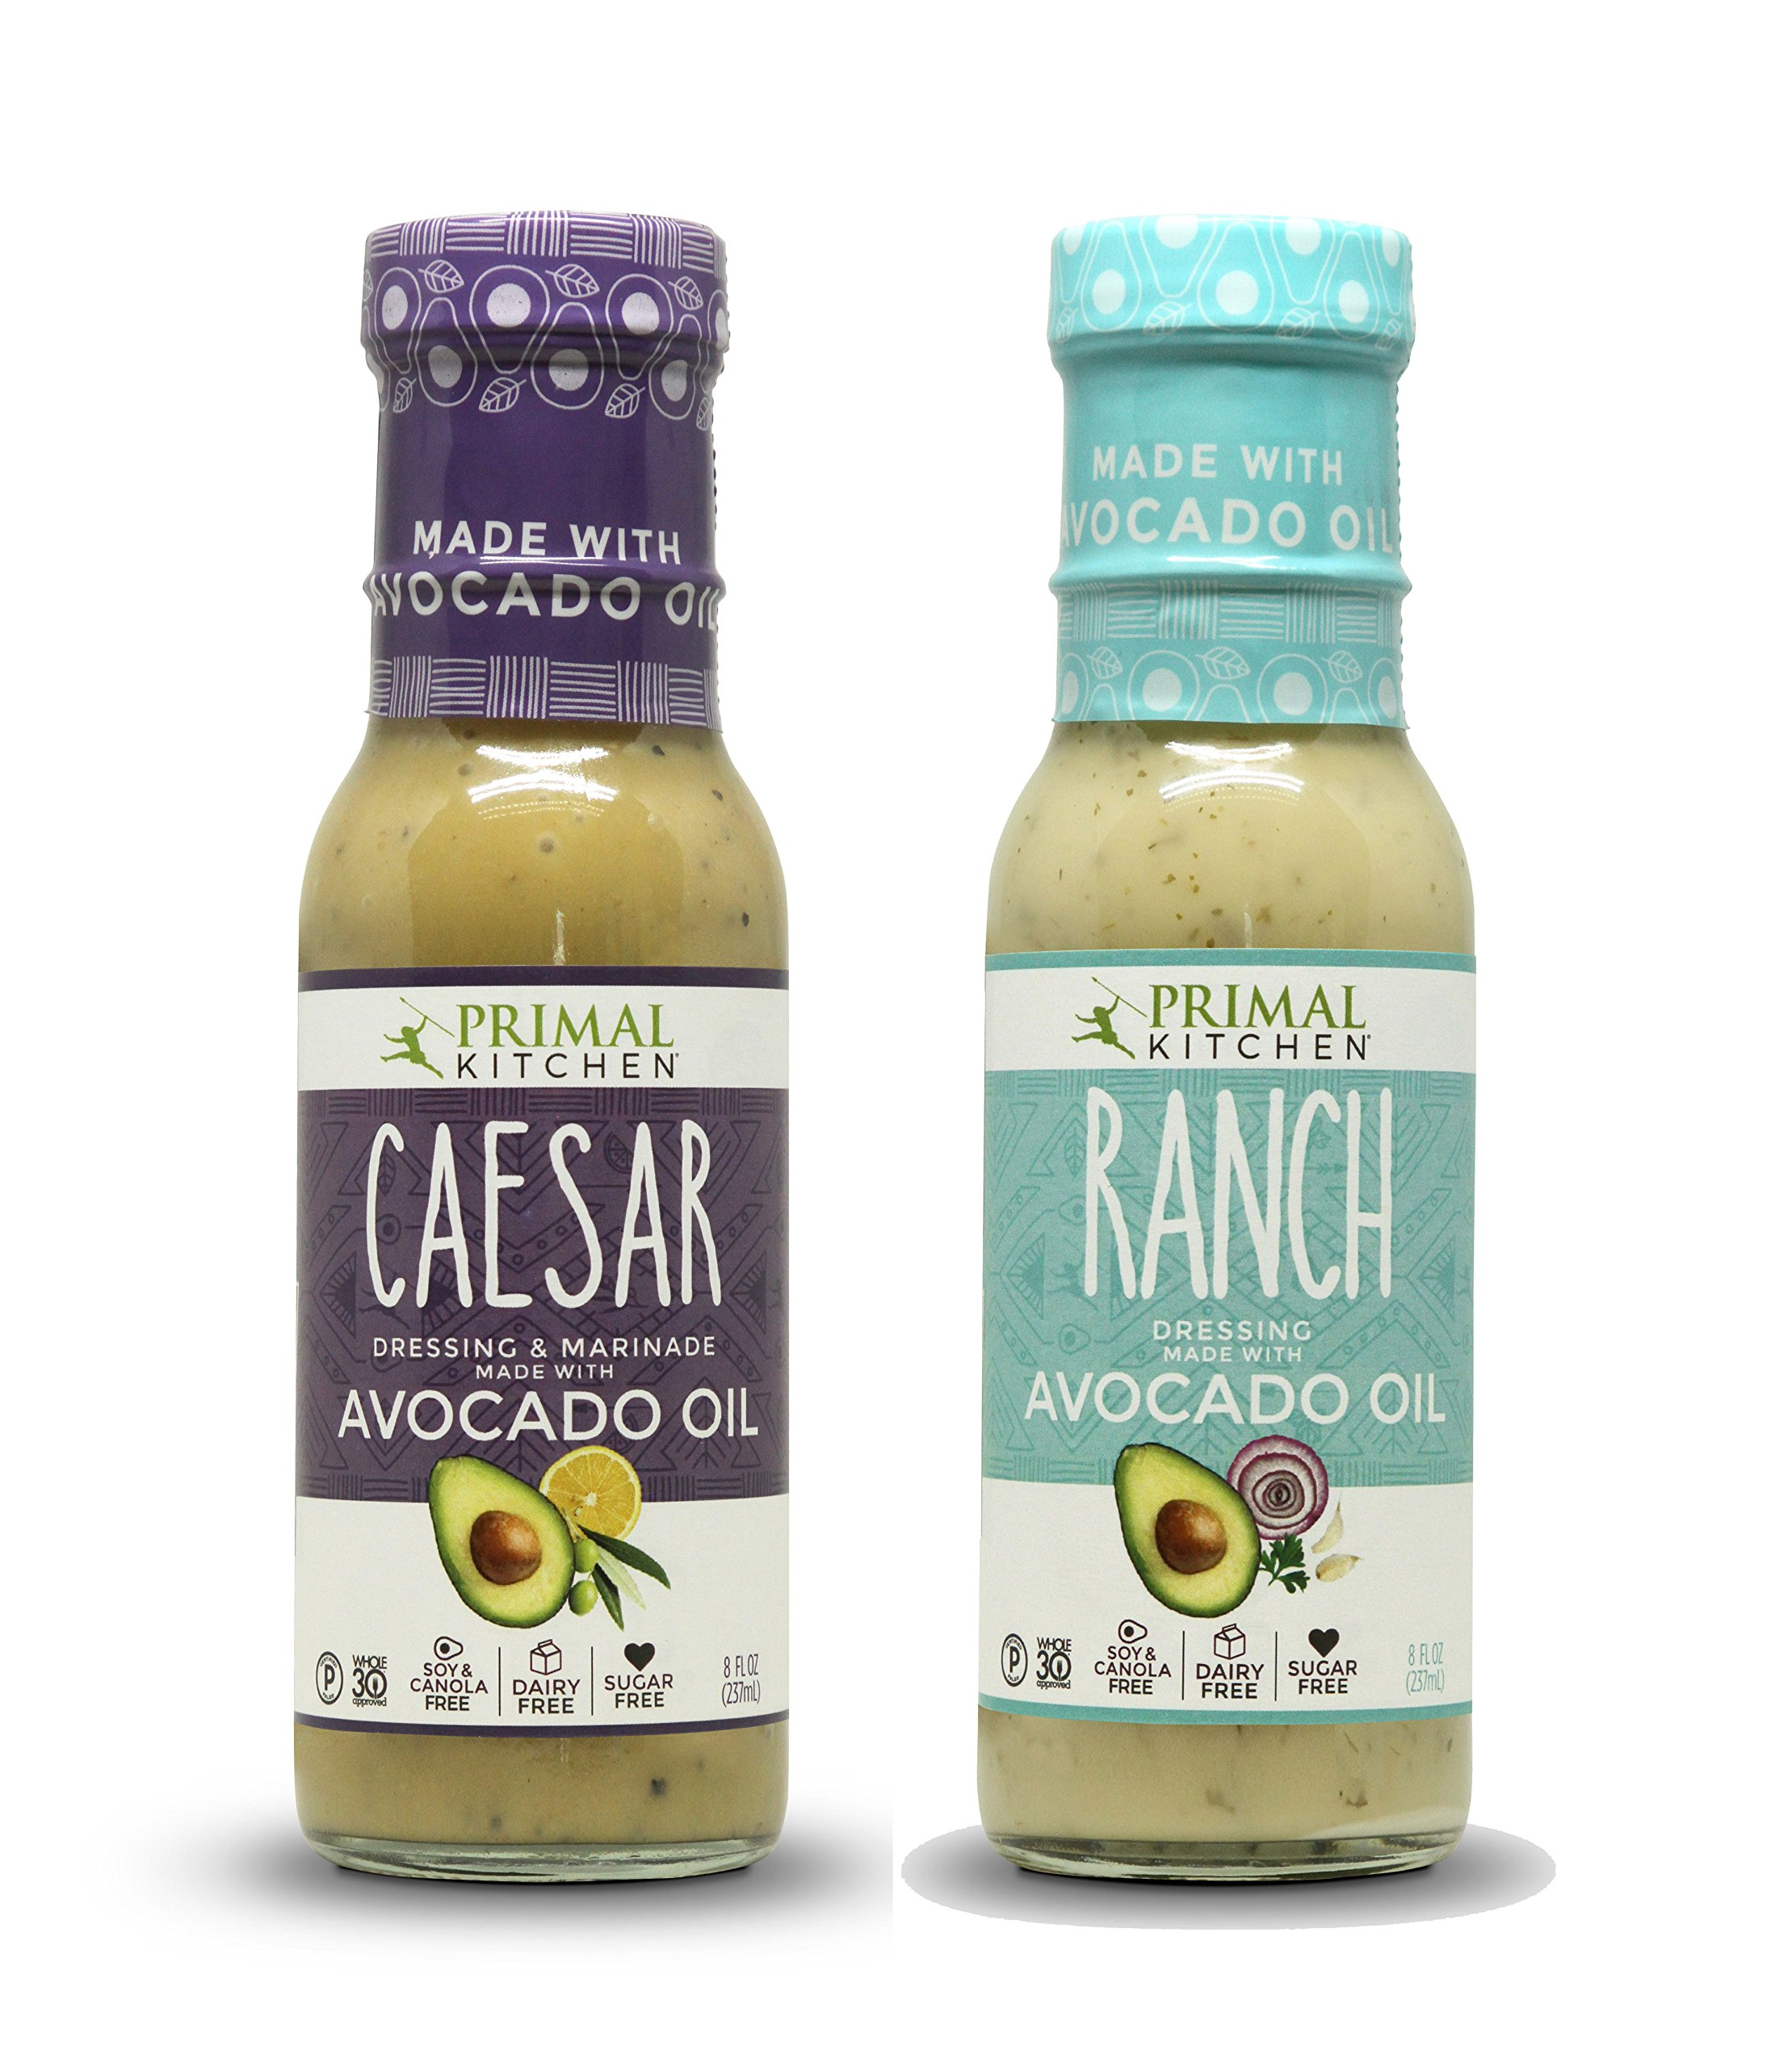 Primal Kitchen - Caesar and Ranch, Avocado Oil-Based Dressing, Whole30 and Paleo Approved (8 oz each)